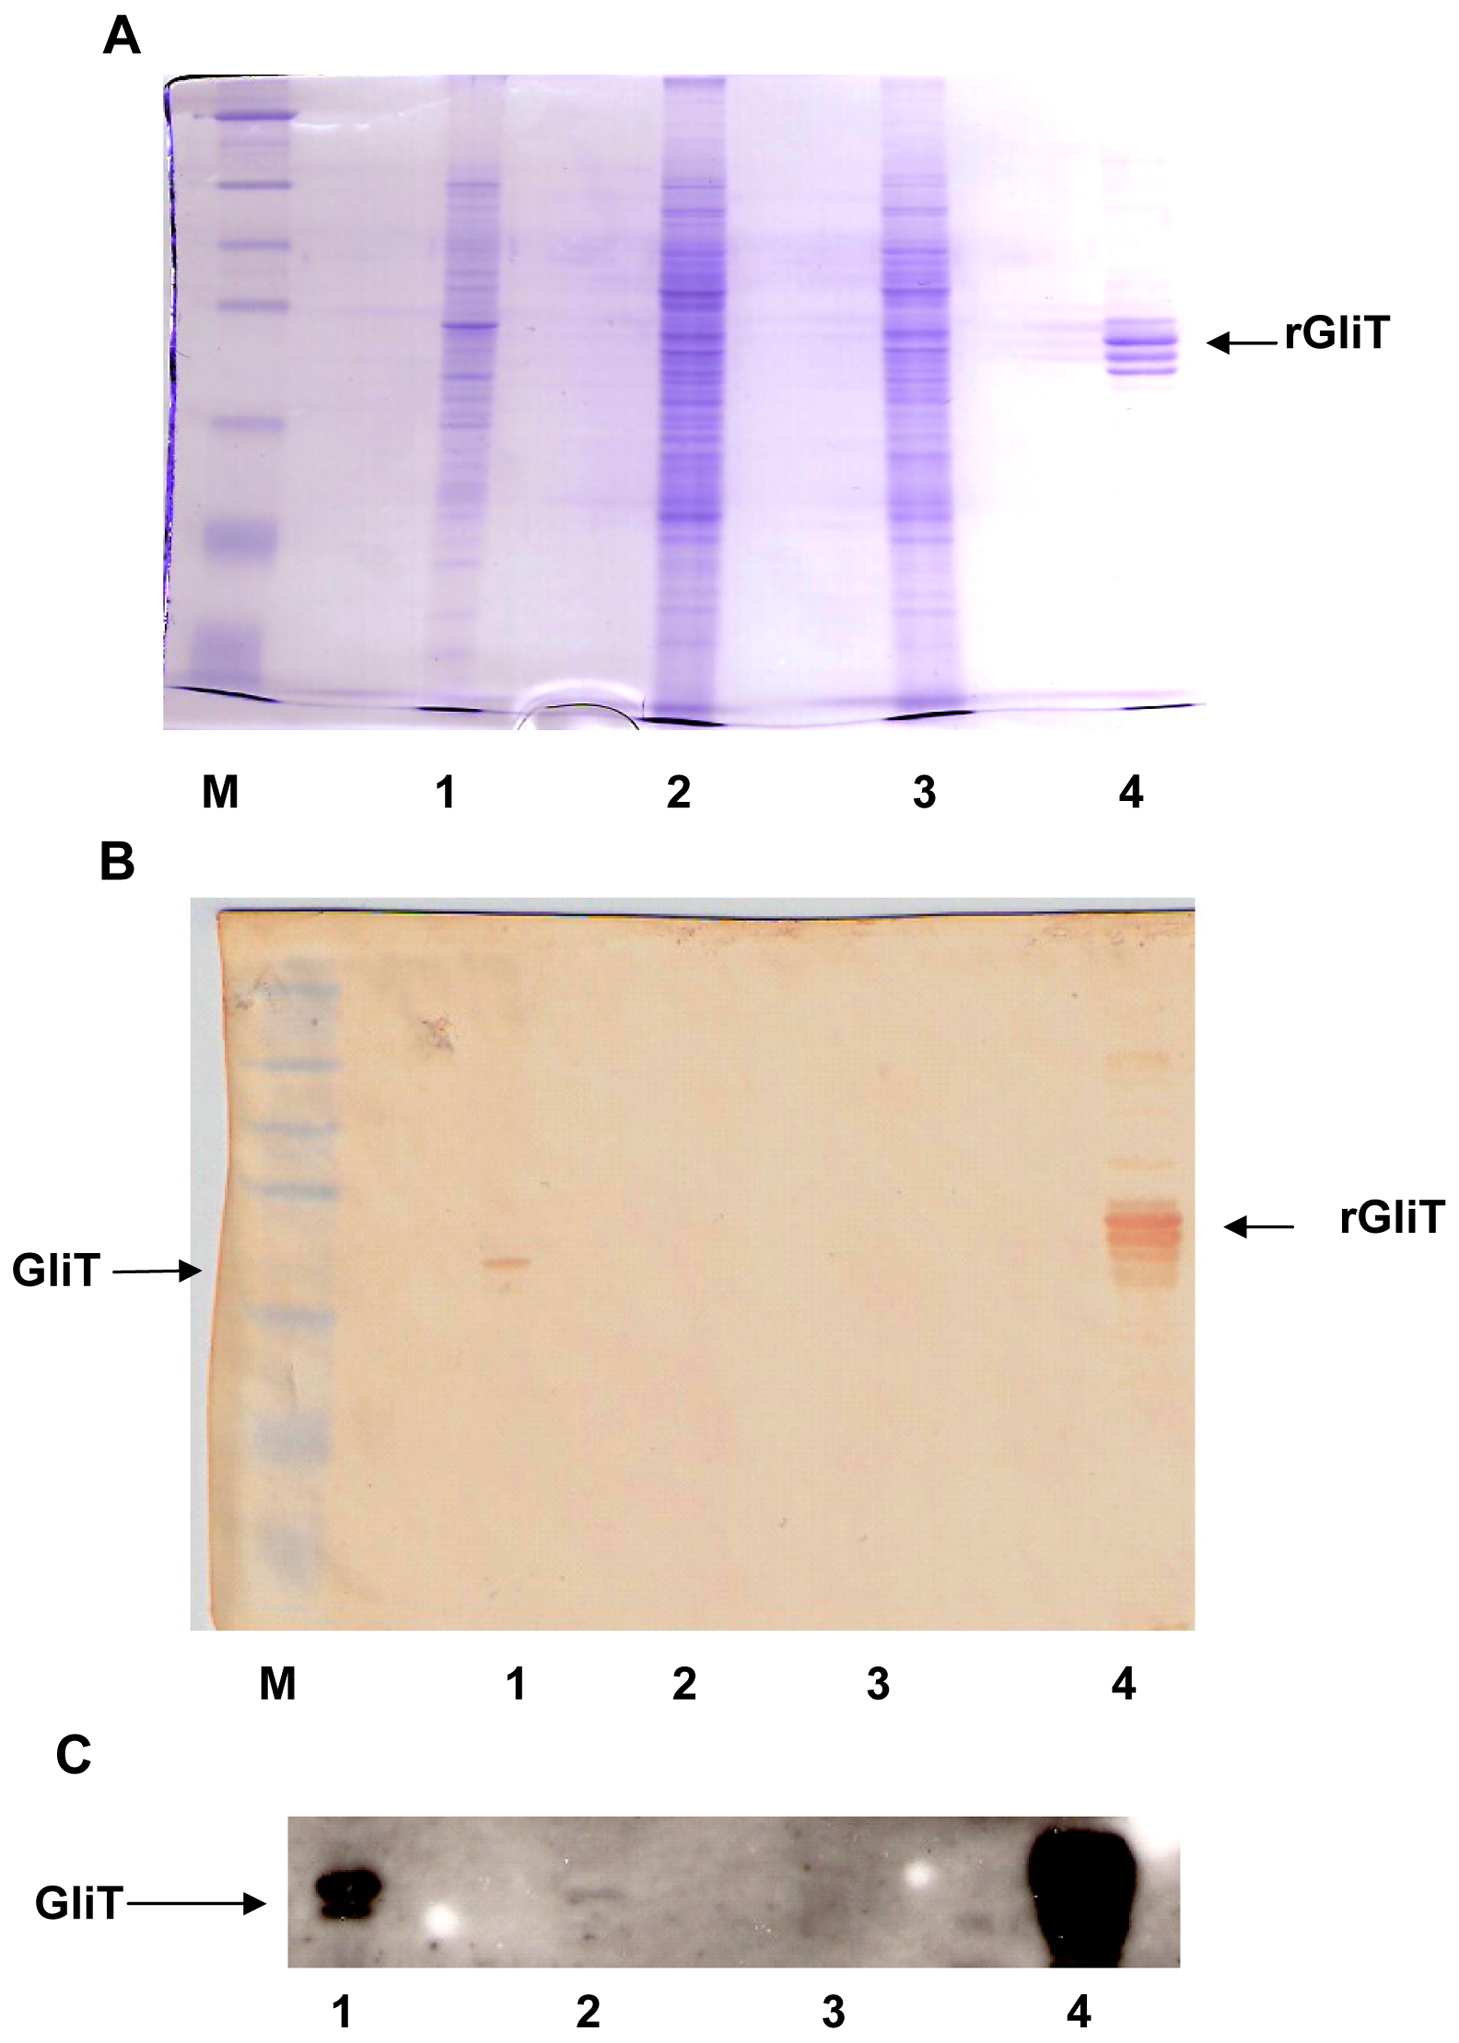 Immunoaffinity purified human IgG detects native GliT in <i>A. fumigatus</i>.